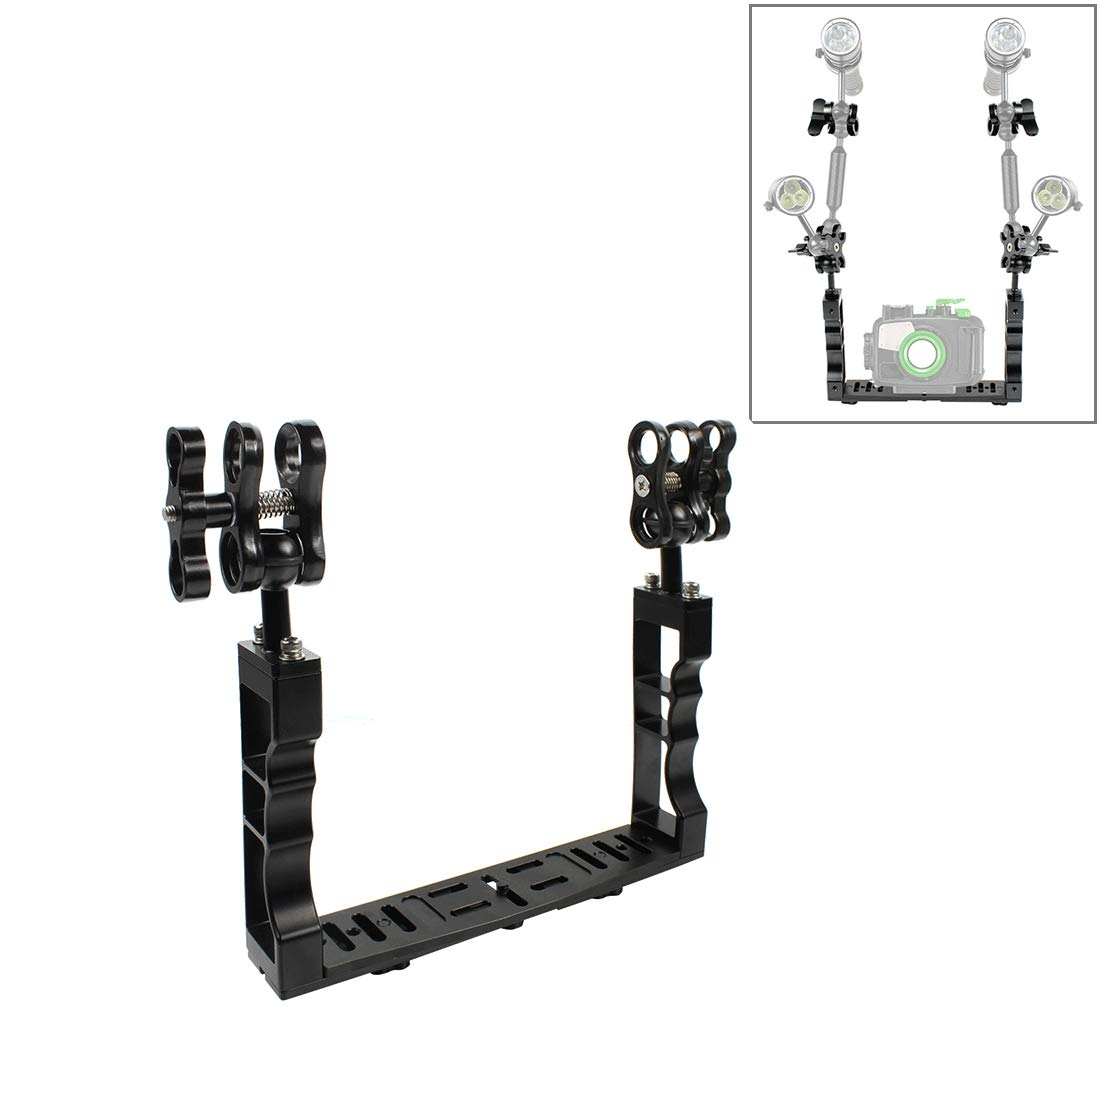 PULUZ Dual Handle Aluminium Alloy Underwater Video Light Stabilizer Tray with Dual Ball Clamp for Underwater Camera Housings by PULUZ